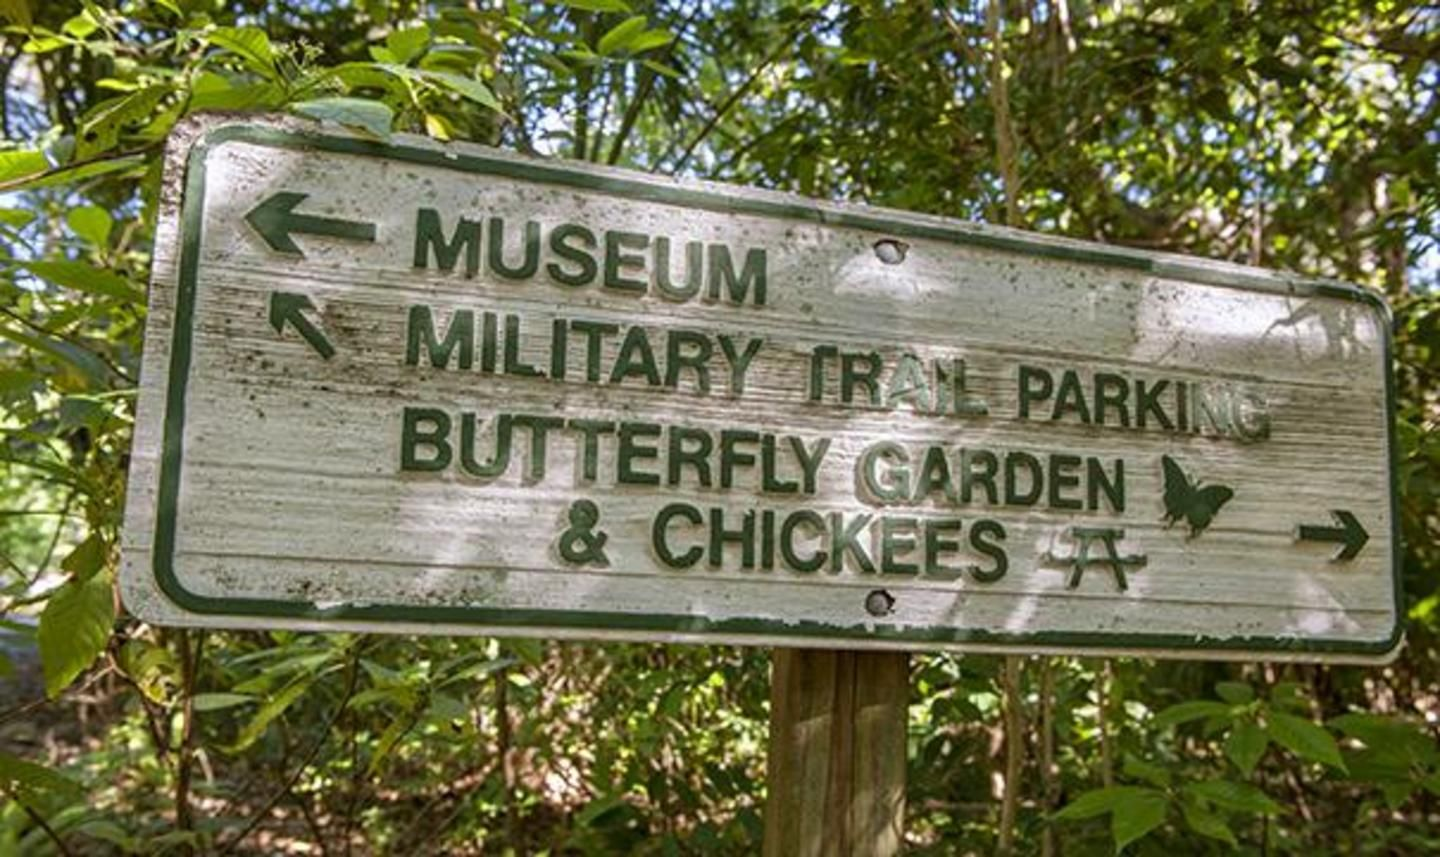 Arch Creek Park & Nature Center Museum Military Trail sign